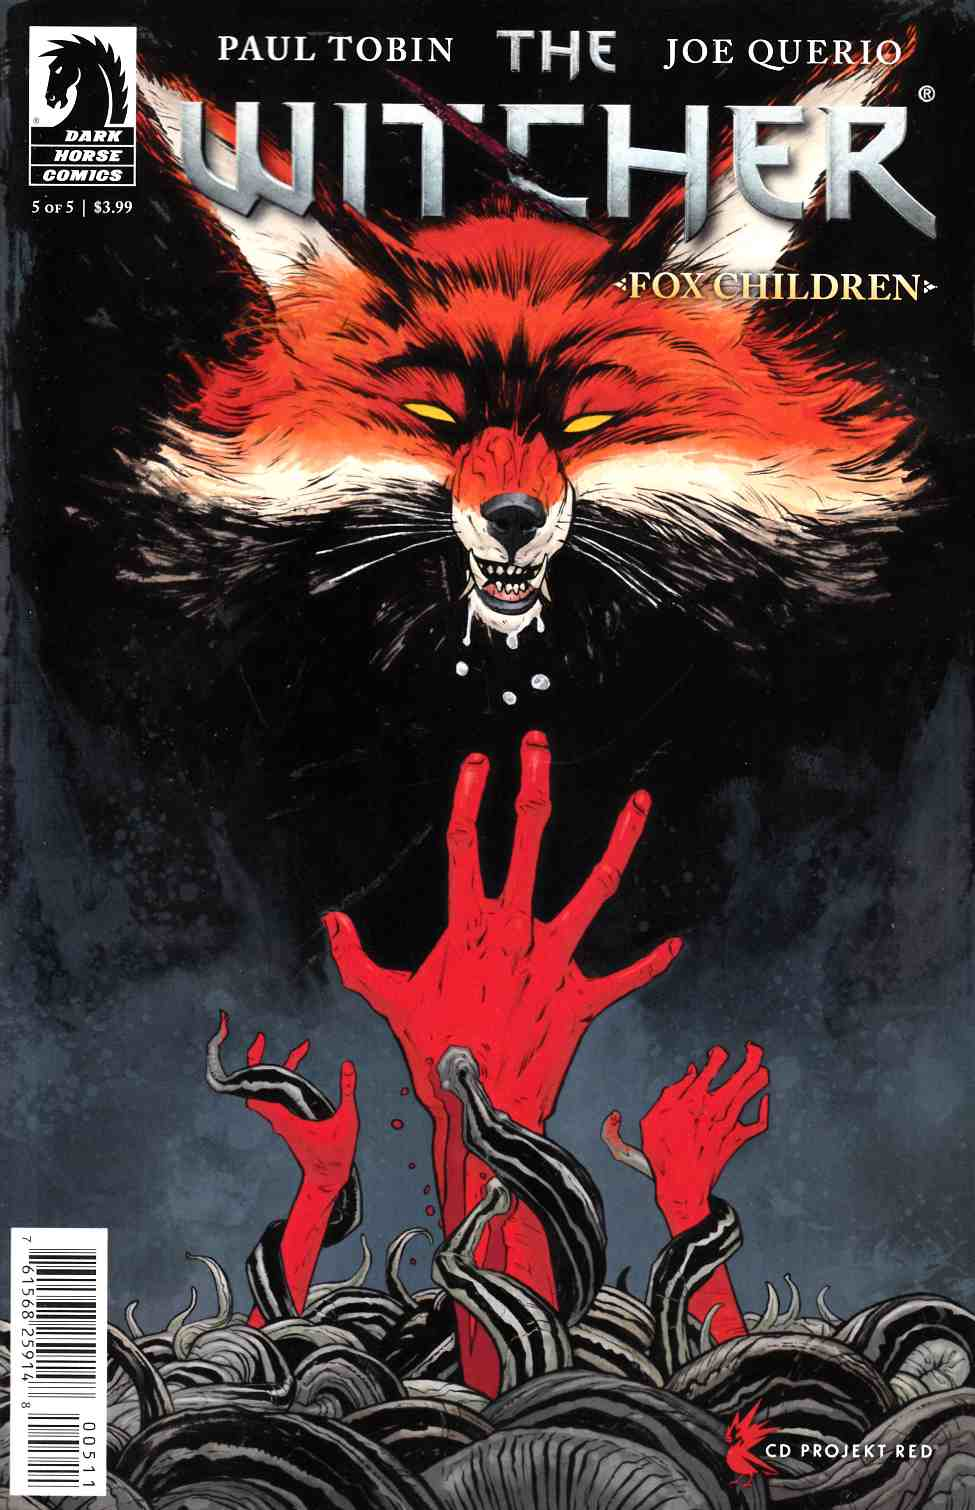 Witcher Fox Children #5 [Dark Horse Comic]